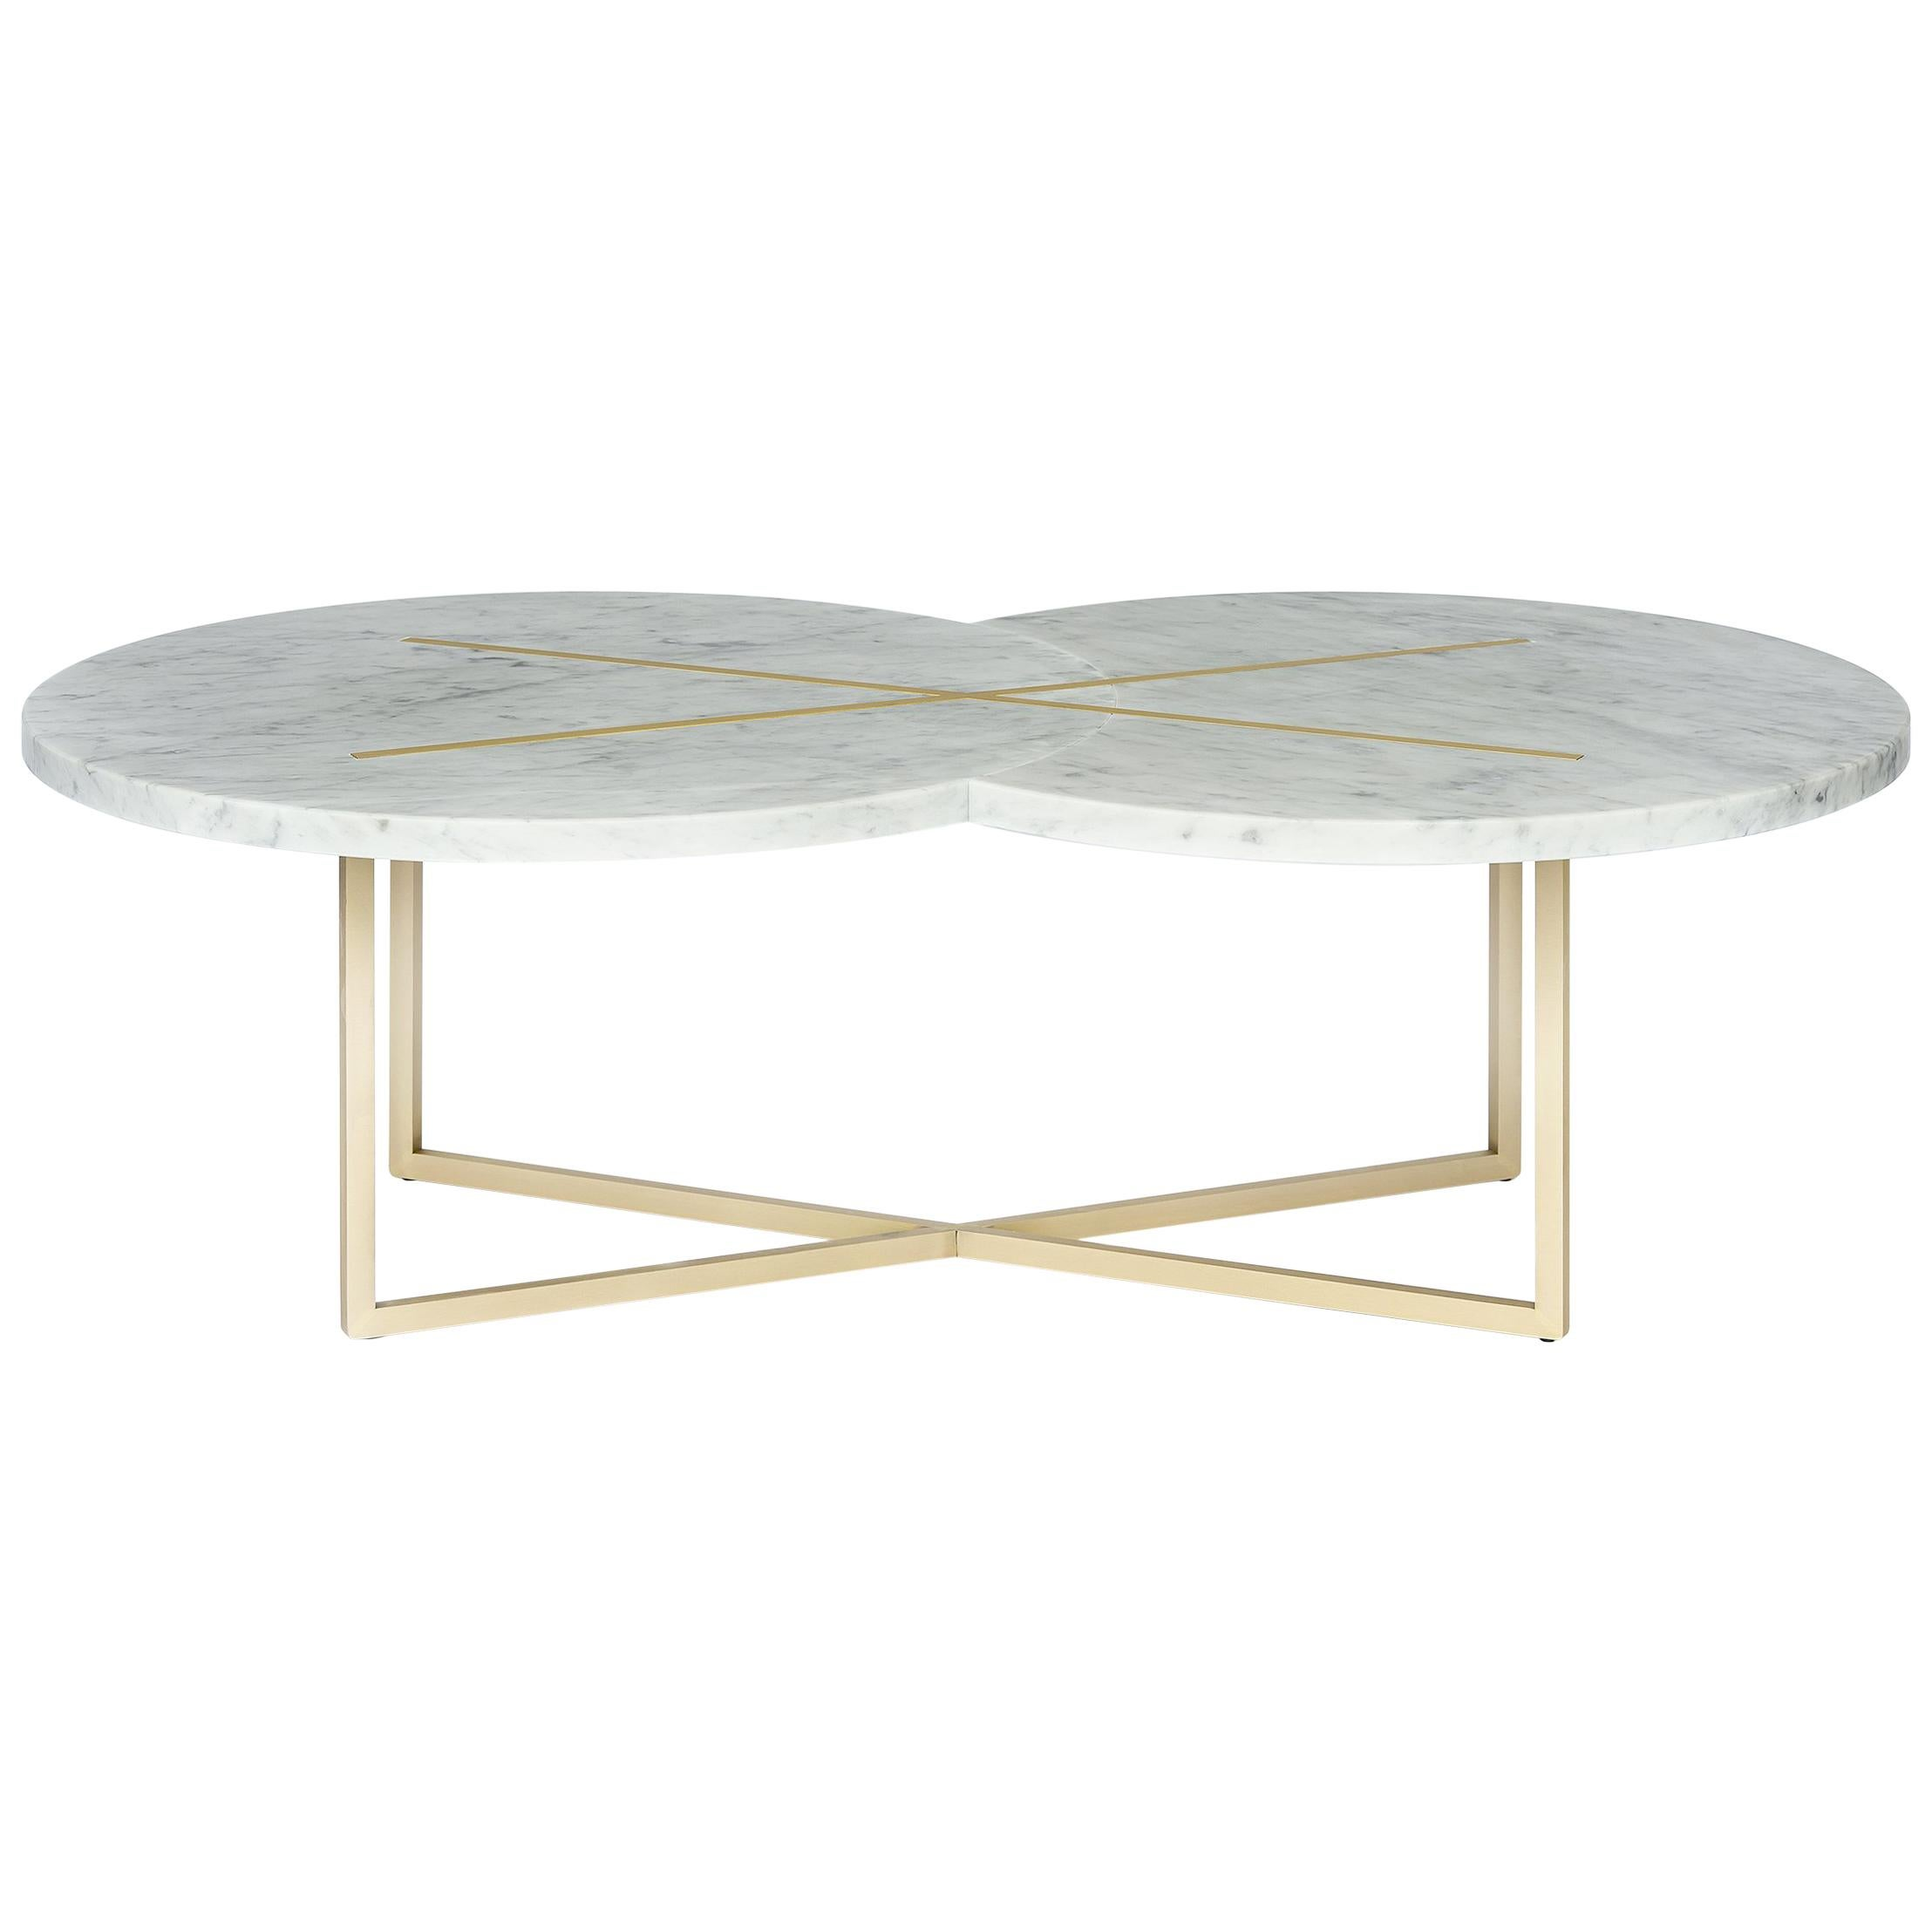 Eclipse X Table in Brass and Carrara Marble, Made in Italy